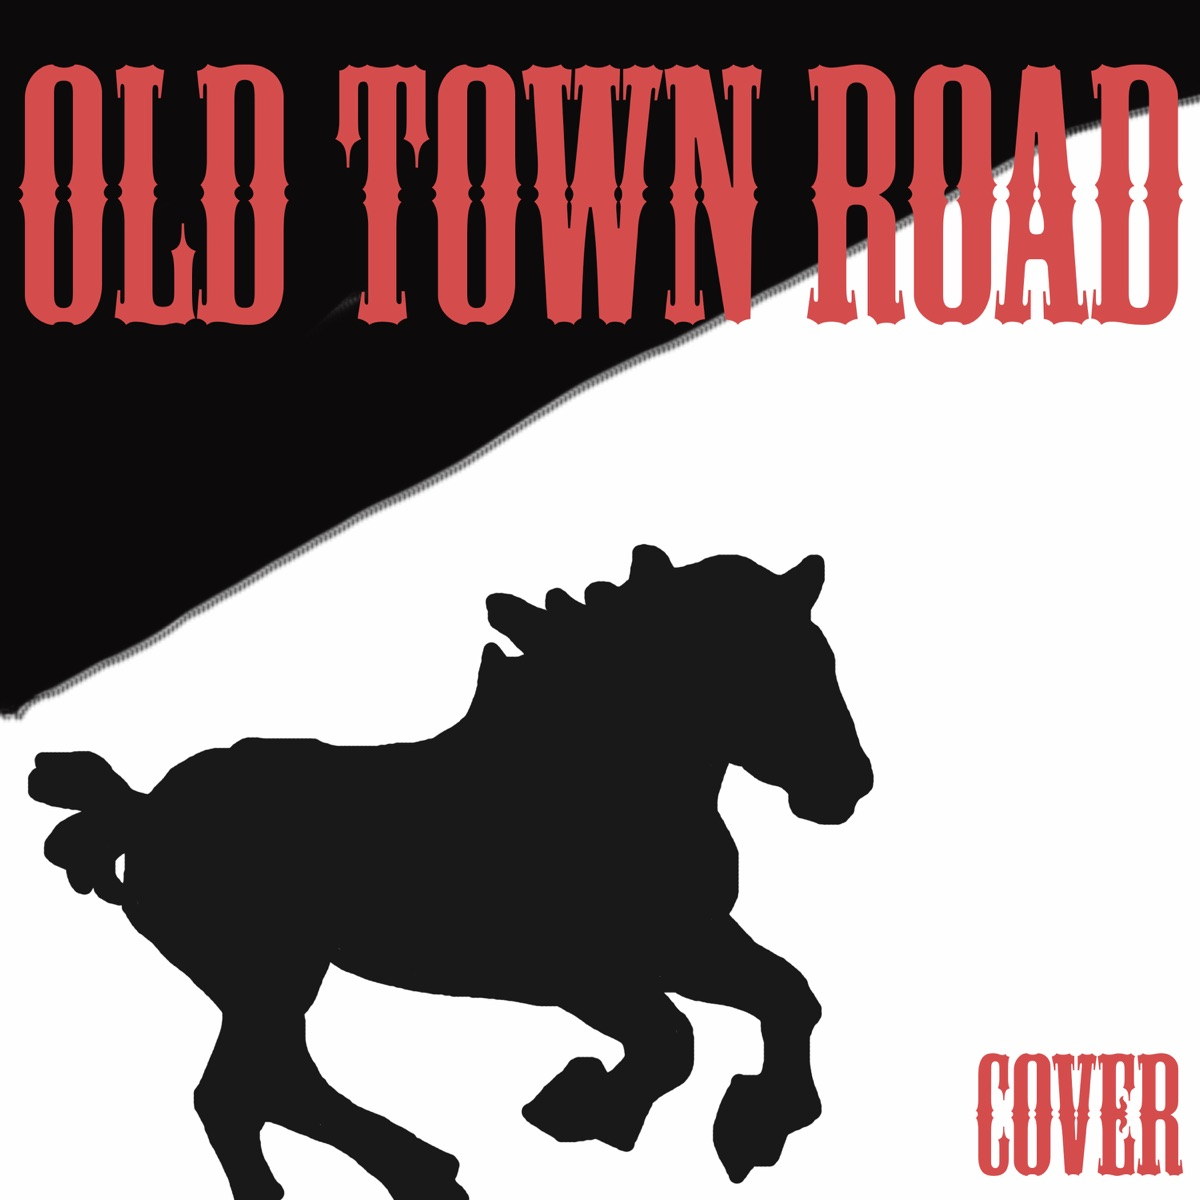 Old Town Road Cover of Lil Nas X - Single Cowboy Man CD cover